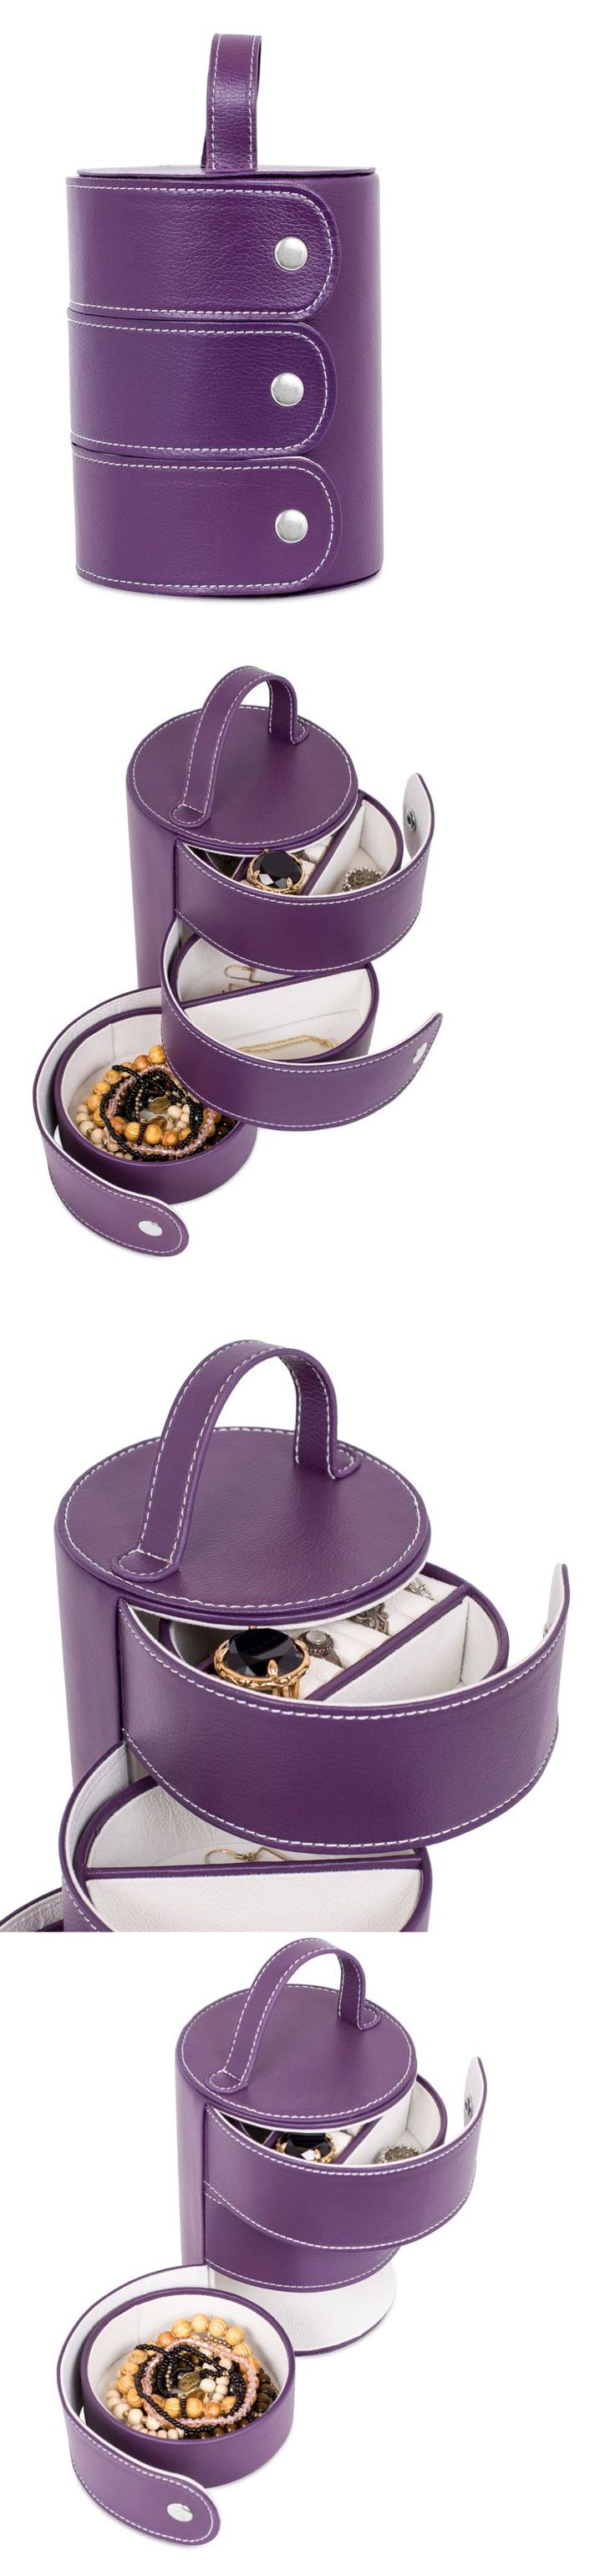 Multi-Purpose 168165: Jewelry Armoire Chest Ring Earings Necklace Organizer Box Cabinet Storage Purple -> BUY IT NOW ONLY: $34.92 on eBay!